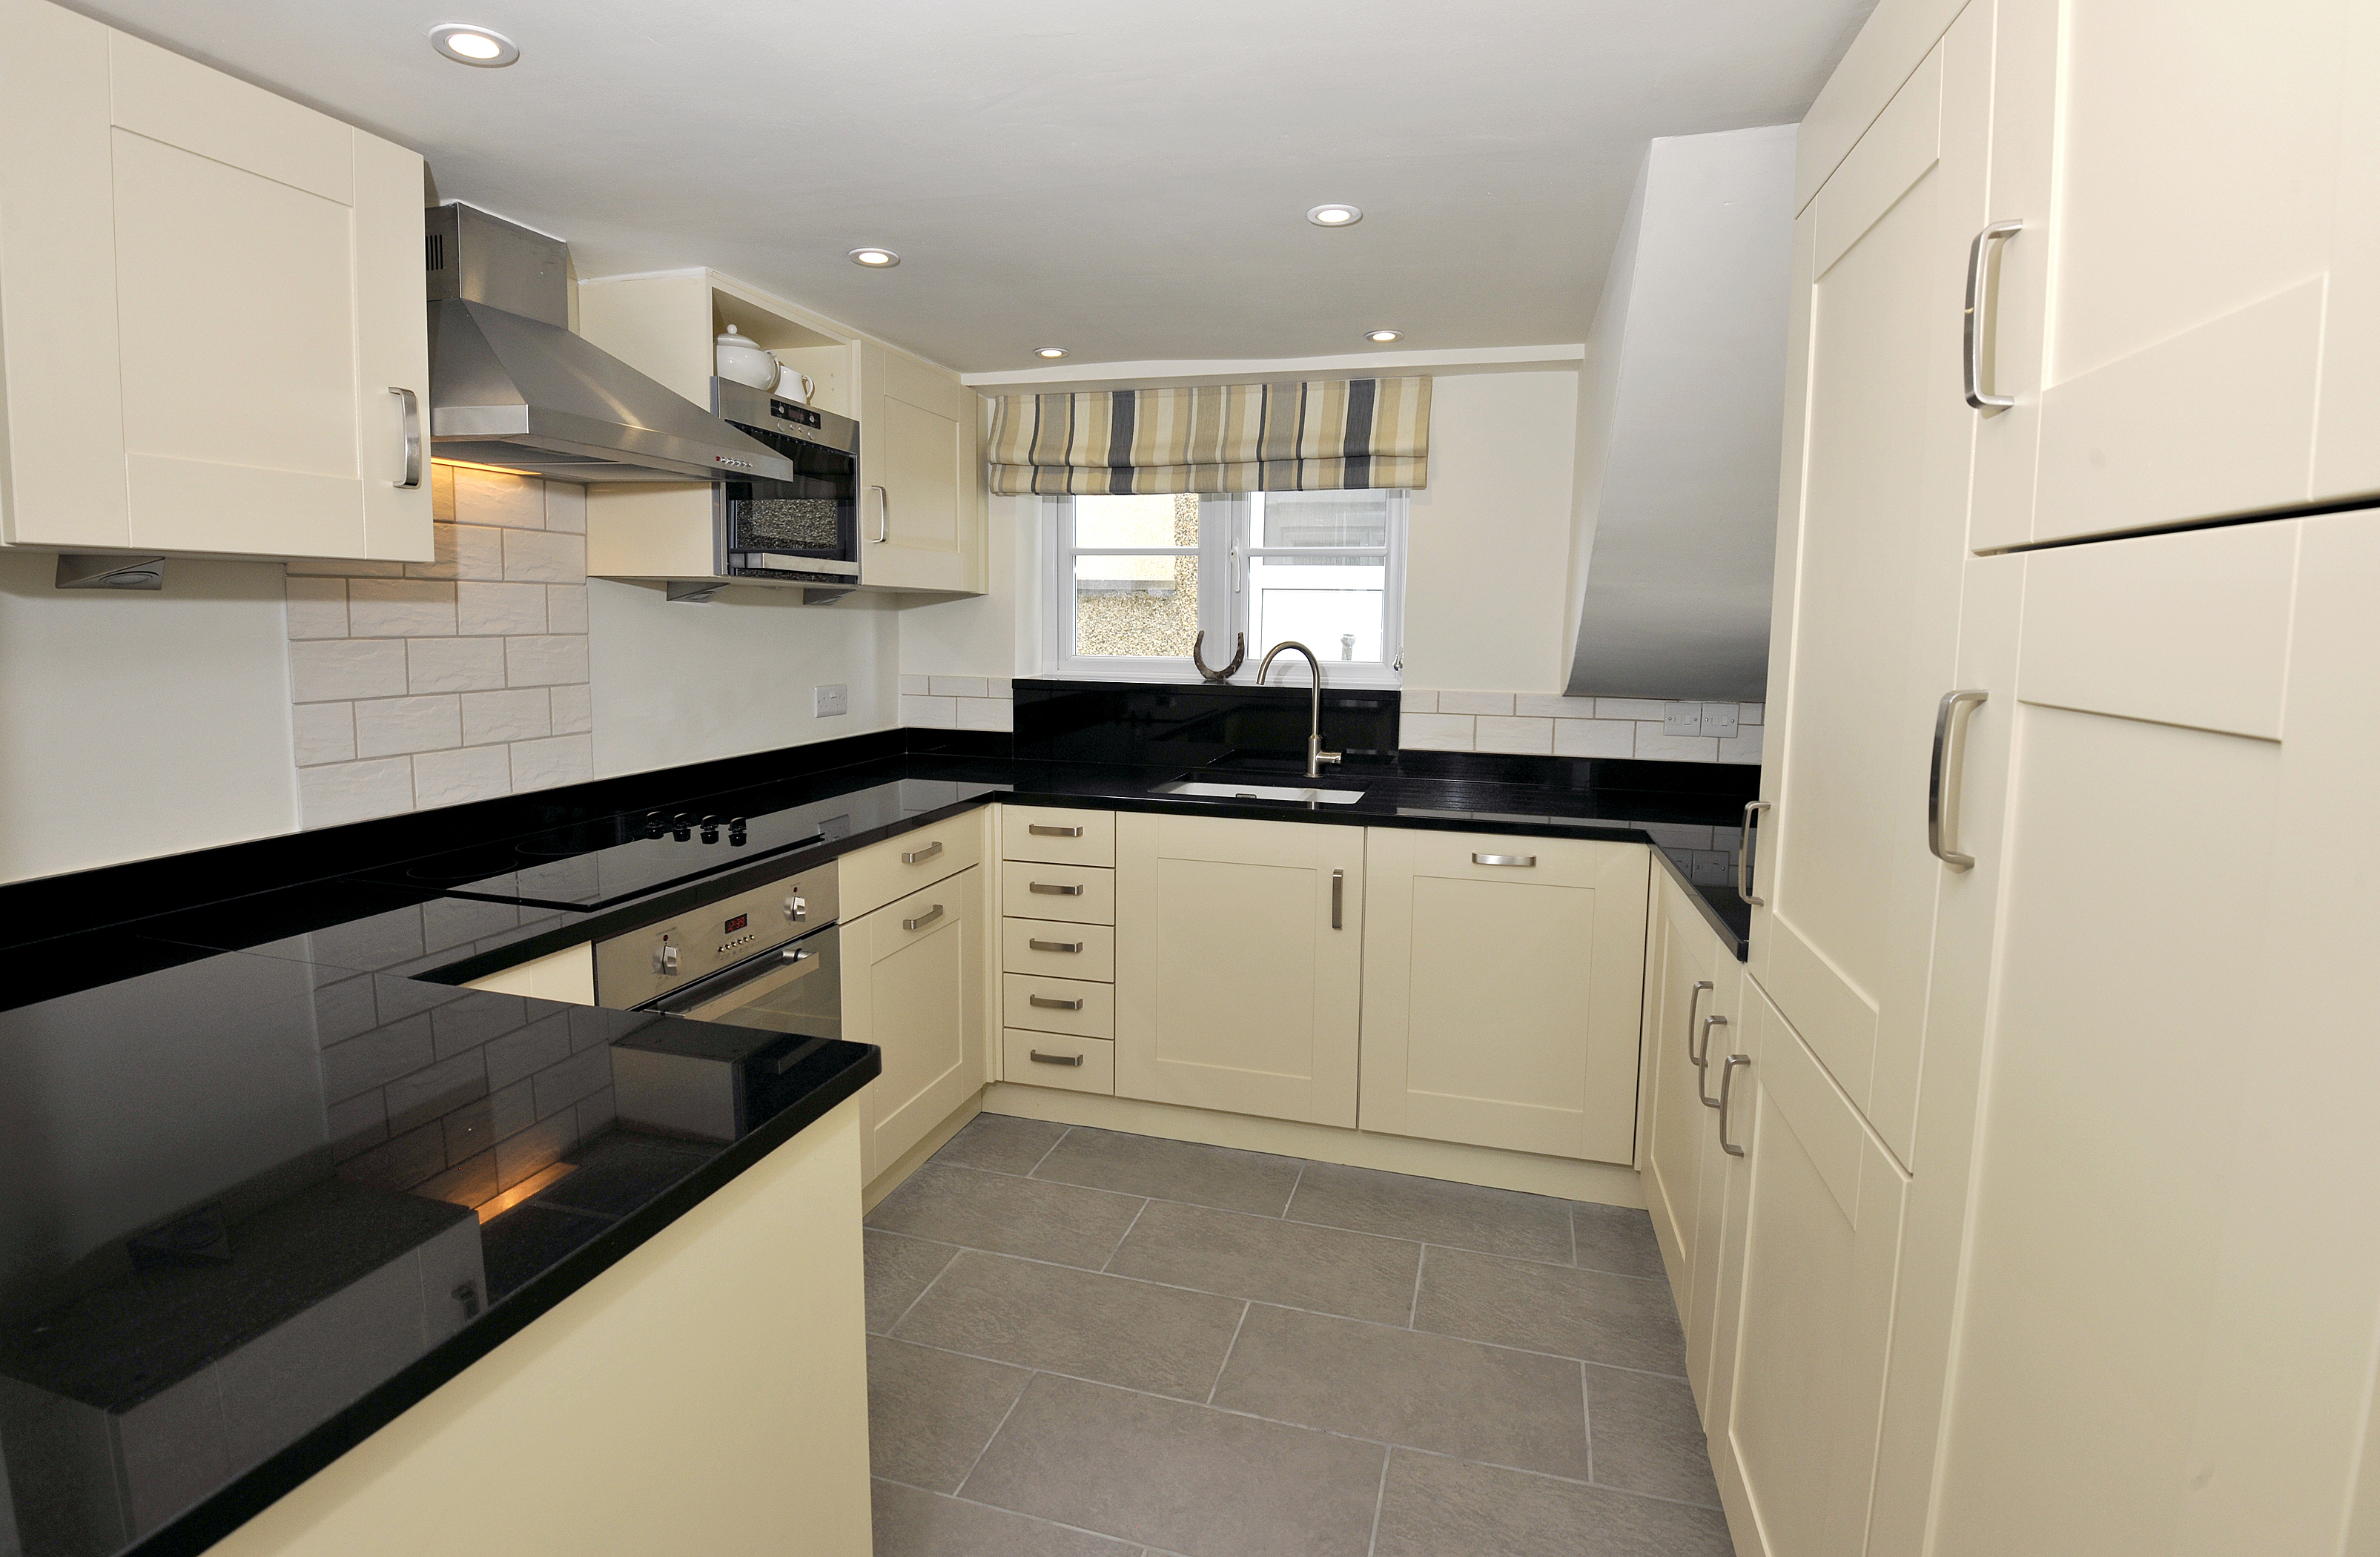 Kitchen Design by Sarah Maidment Interiors, interior designer in Berkhamsted, St. Albans, Hertfordshire